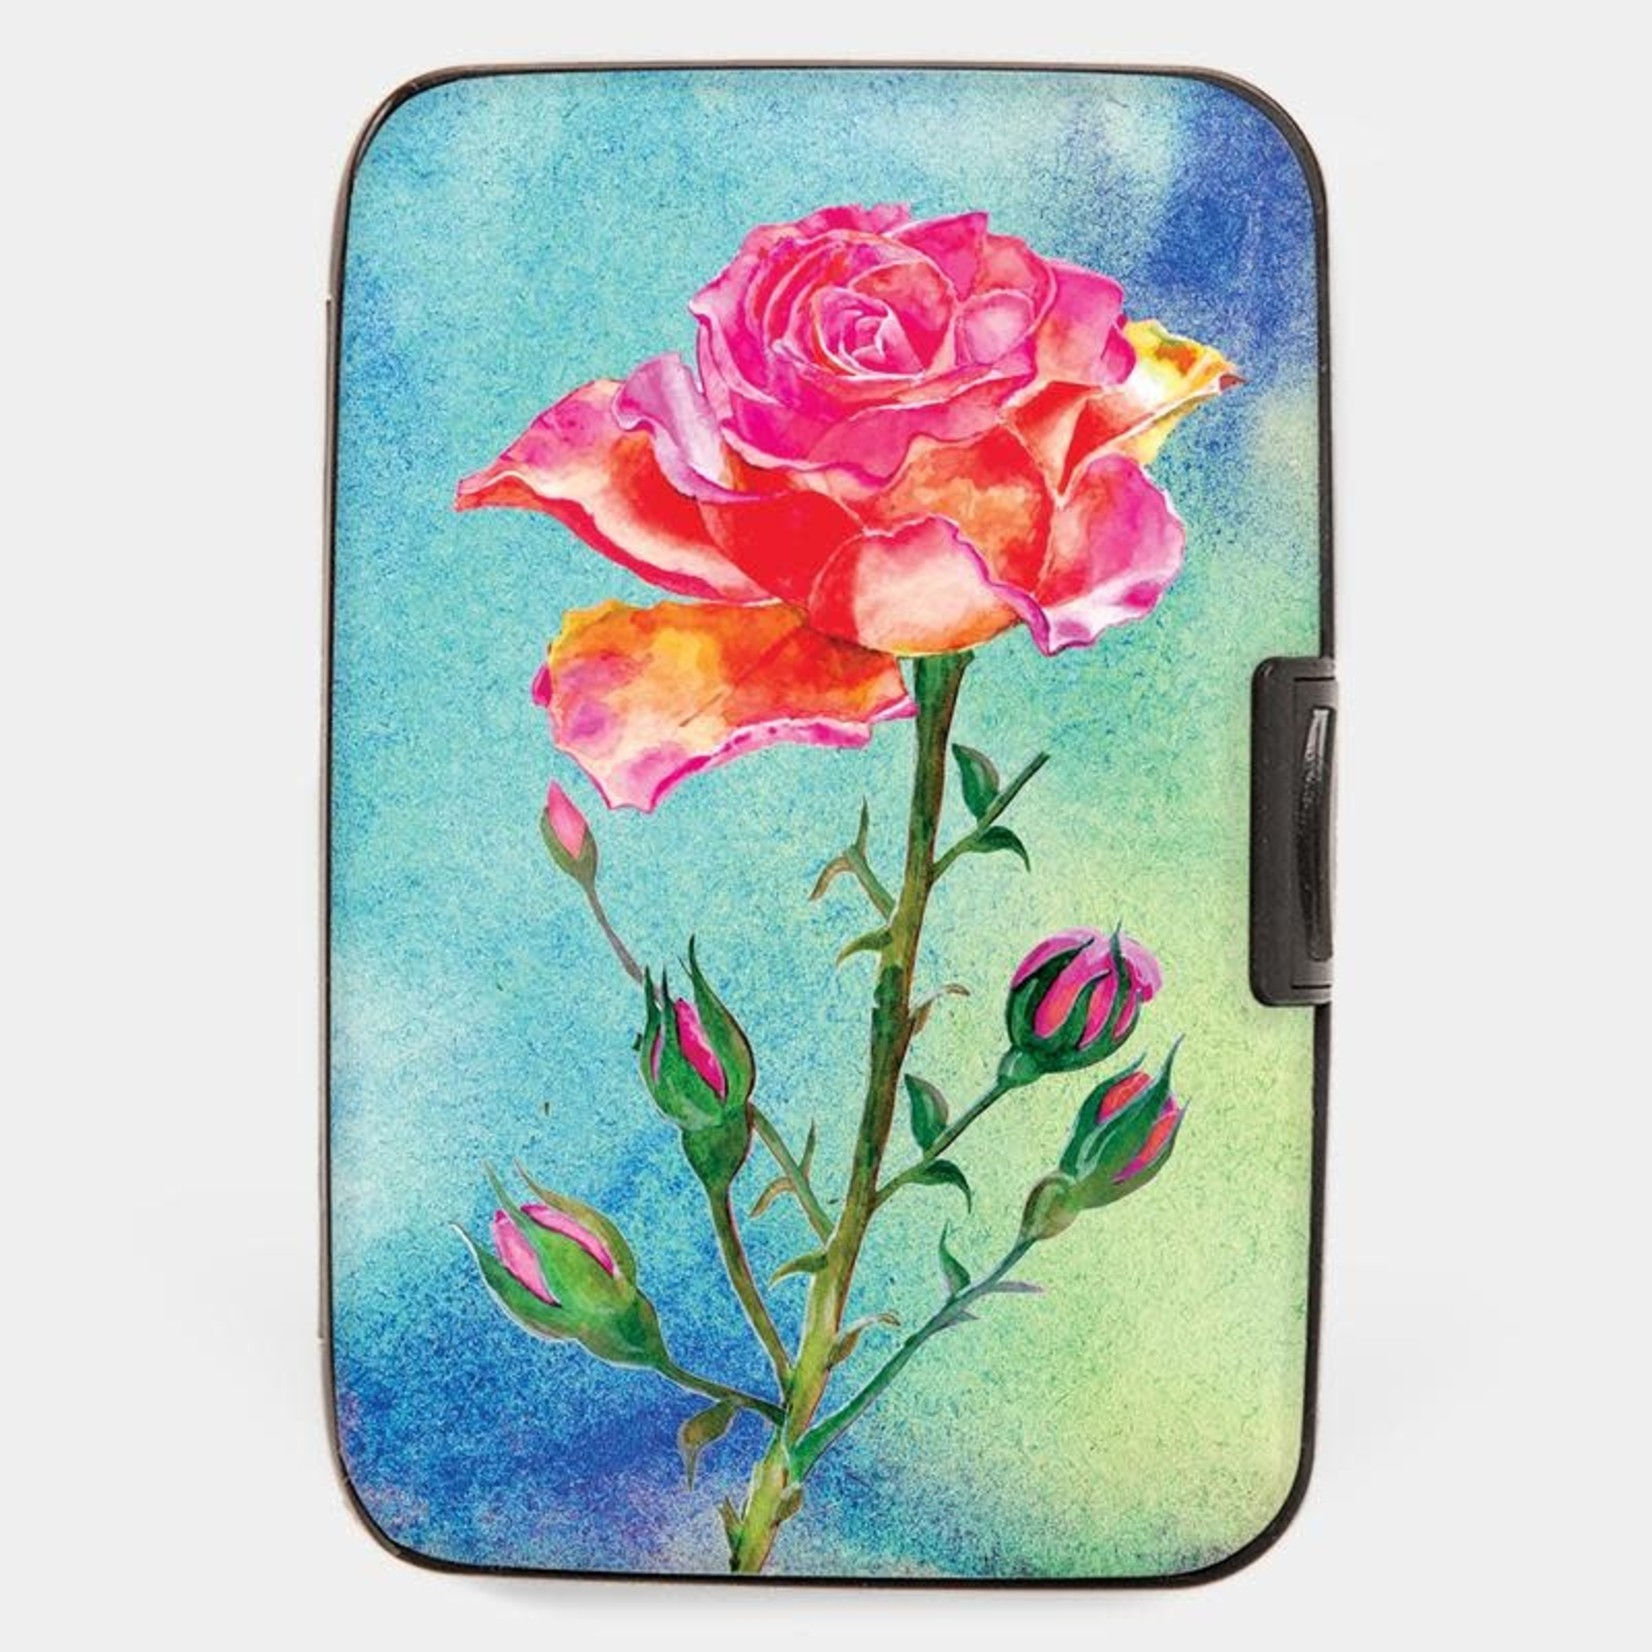 Monarque Armored Wallet - Painted Rose